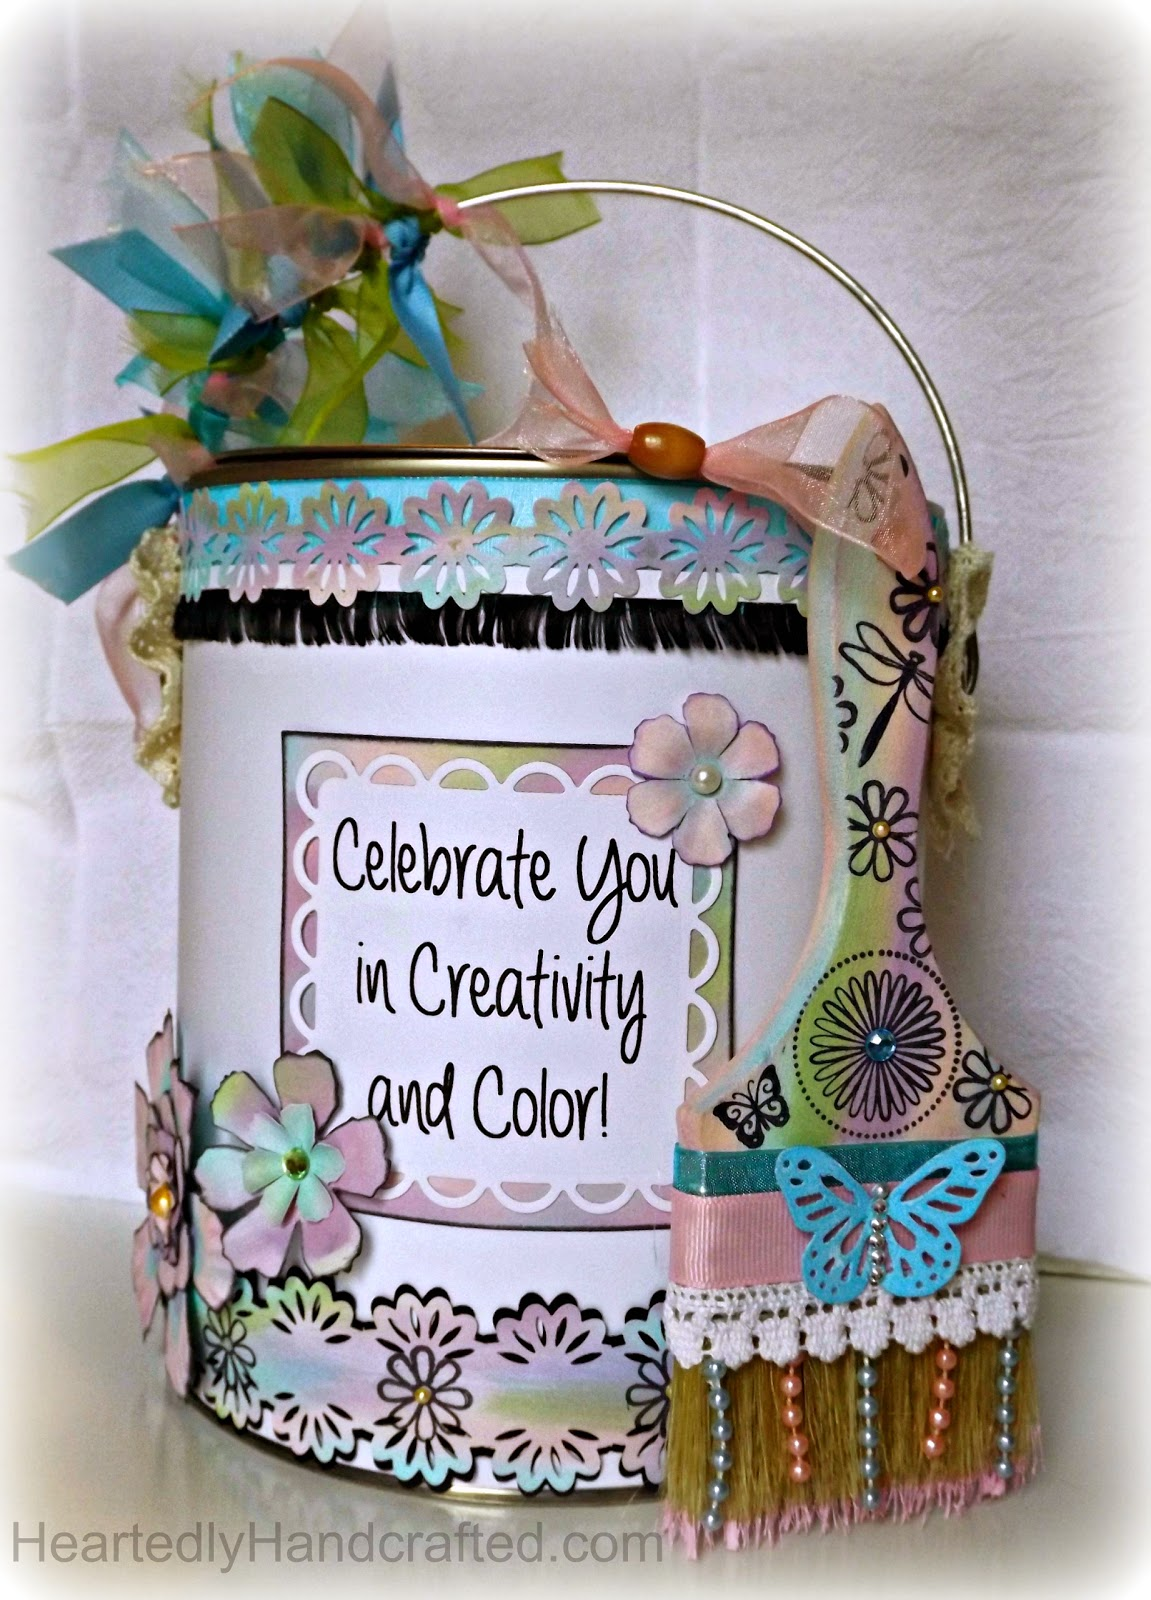 Altered Paint Can with Altered Paint Brush for Gift Giving